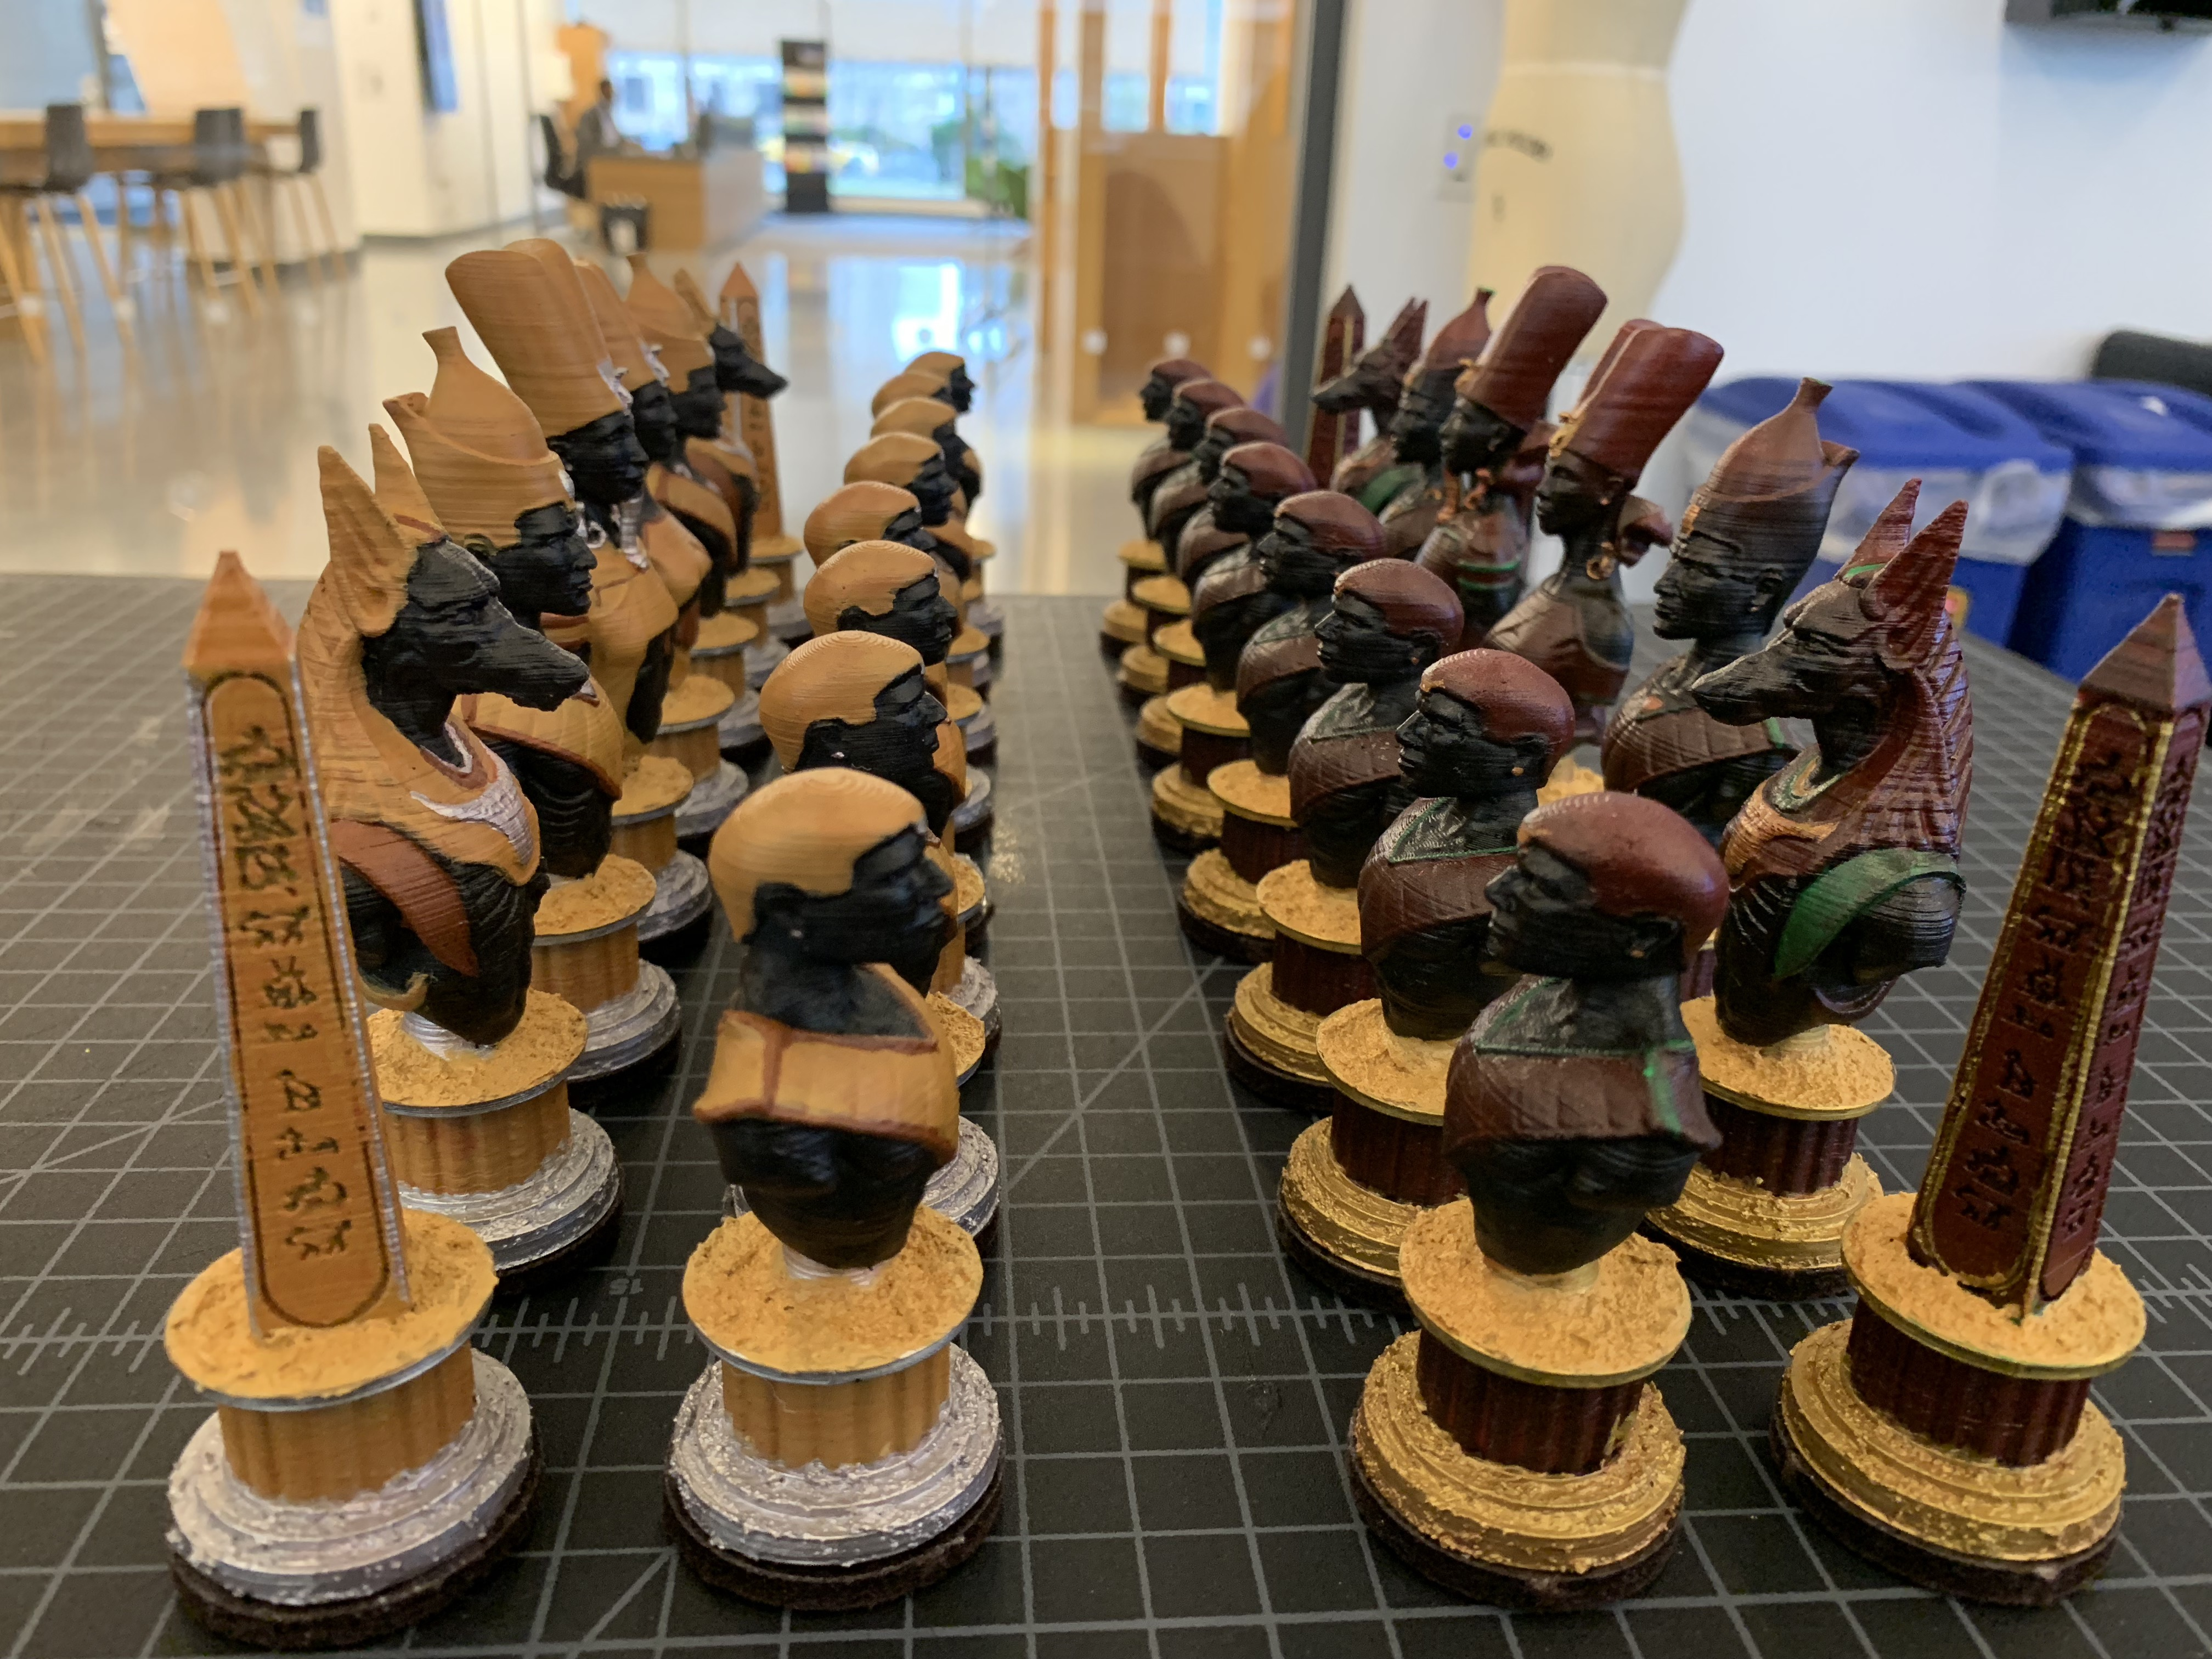 The completed chess pieces are arranged in four rows. The opposing sides face each other.